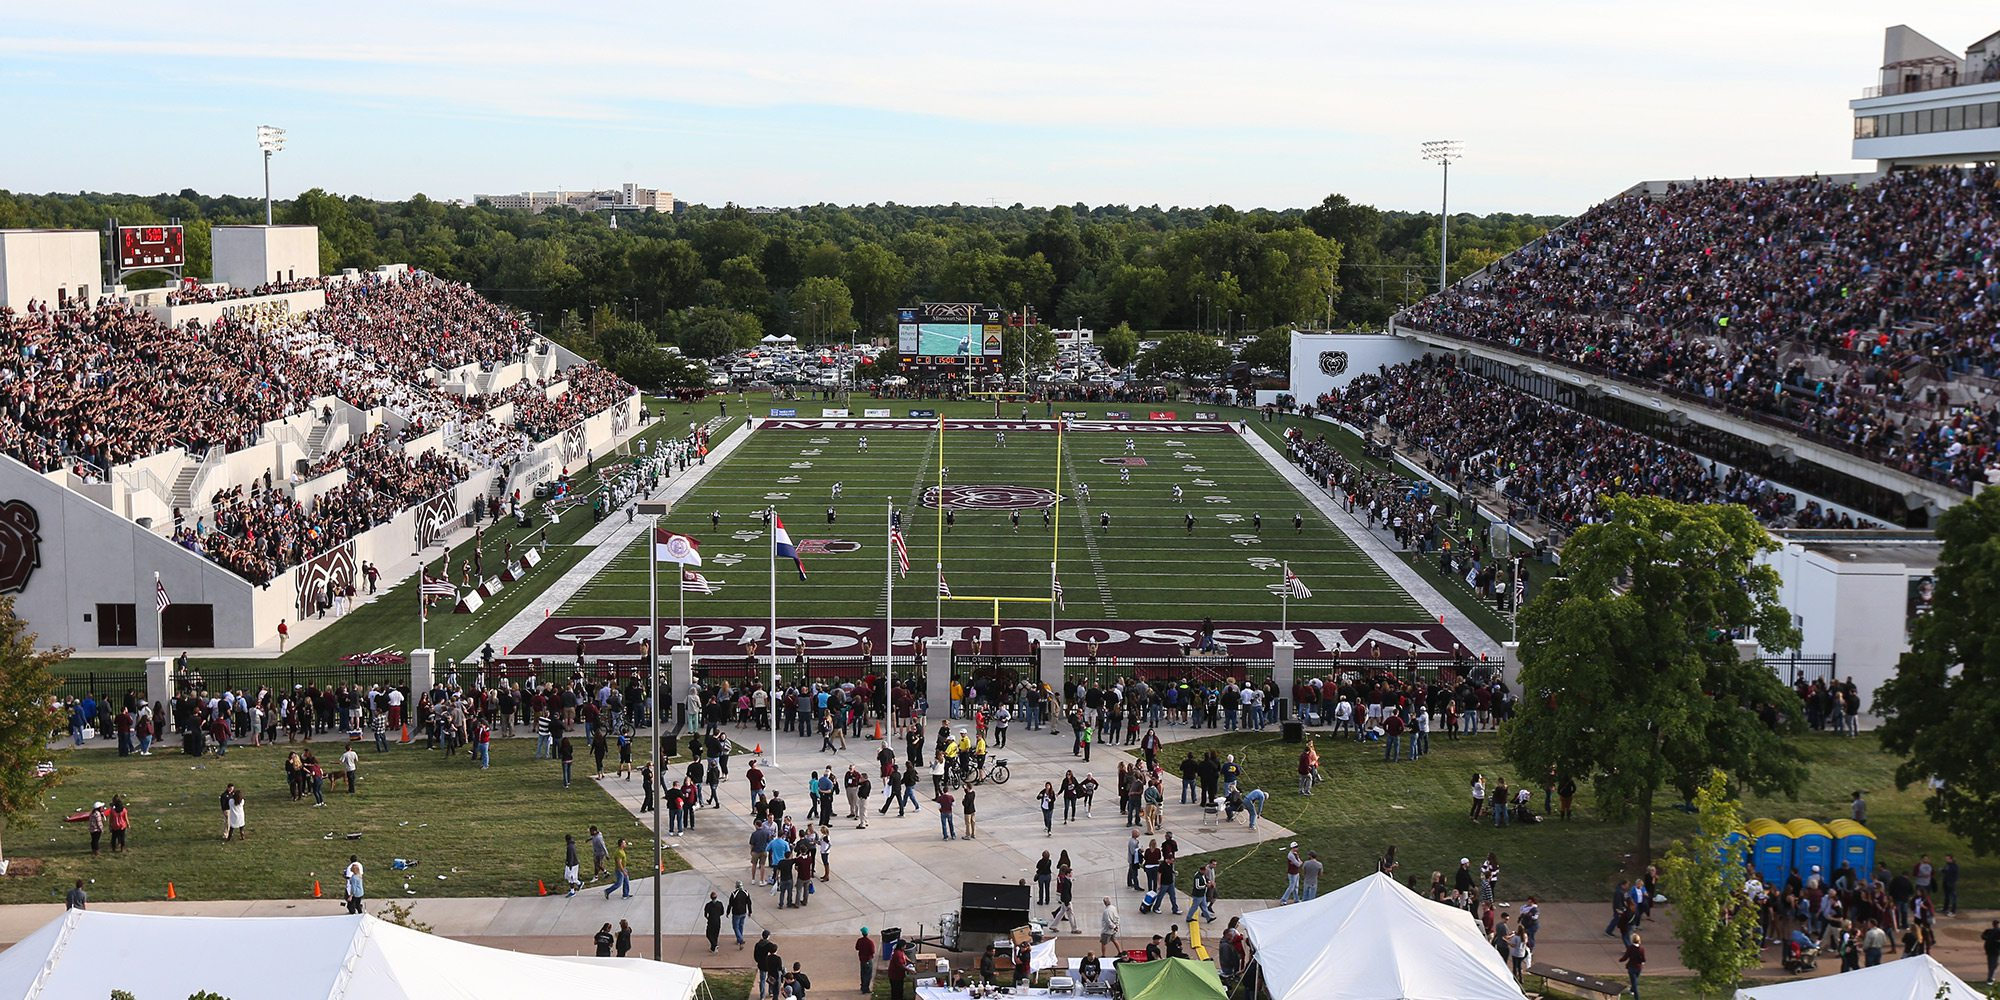 Missouri State Bears football game